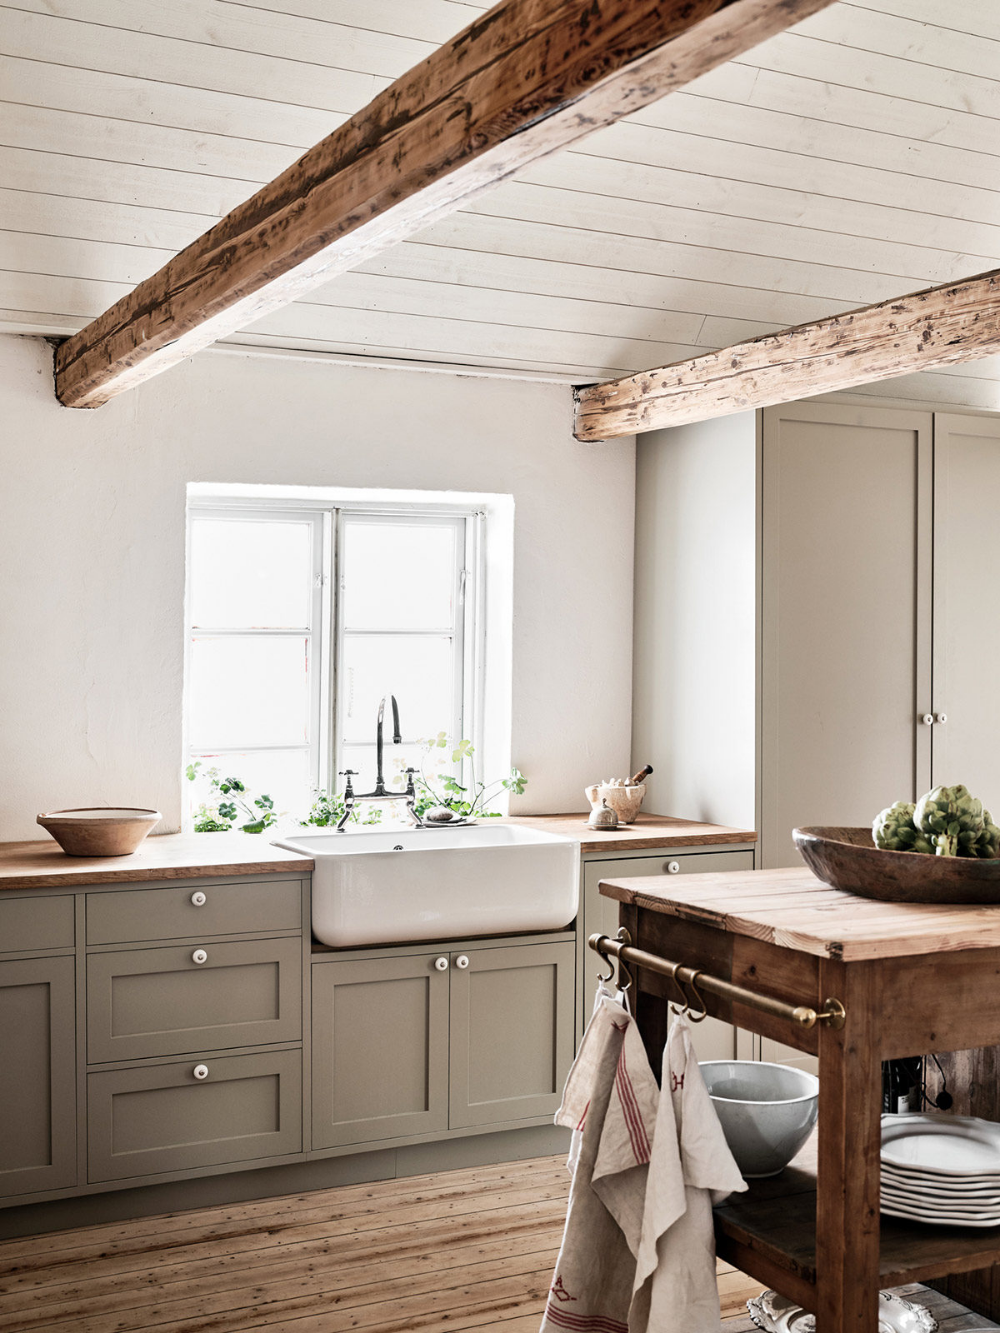 The Modern Farmhouse Kitchen A Dream Remodel In The Swedish Countryside In 2020 Scandinavian Kitchen Design Scandinavian Kitchen Scandinavian Kitchen Cabinets